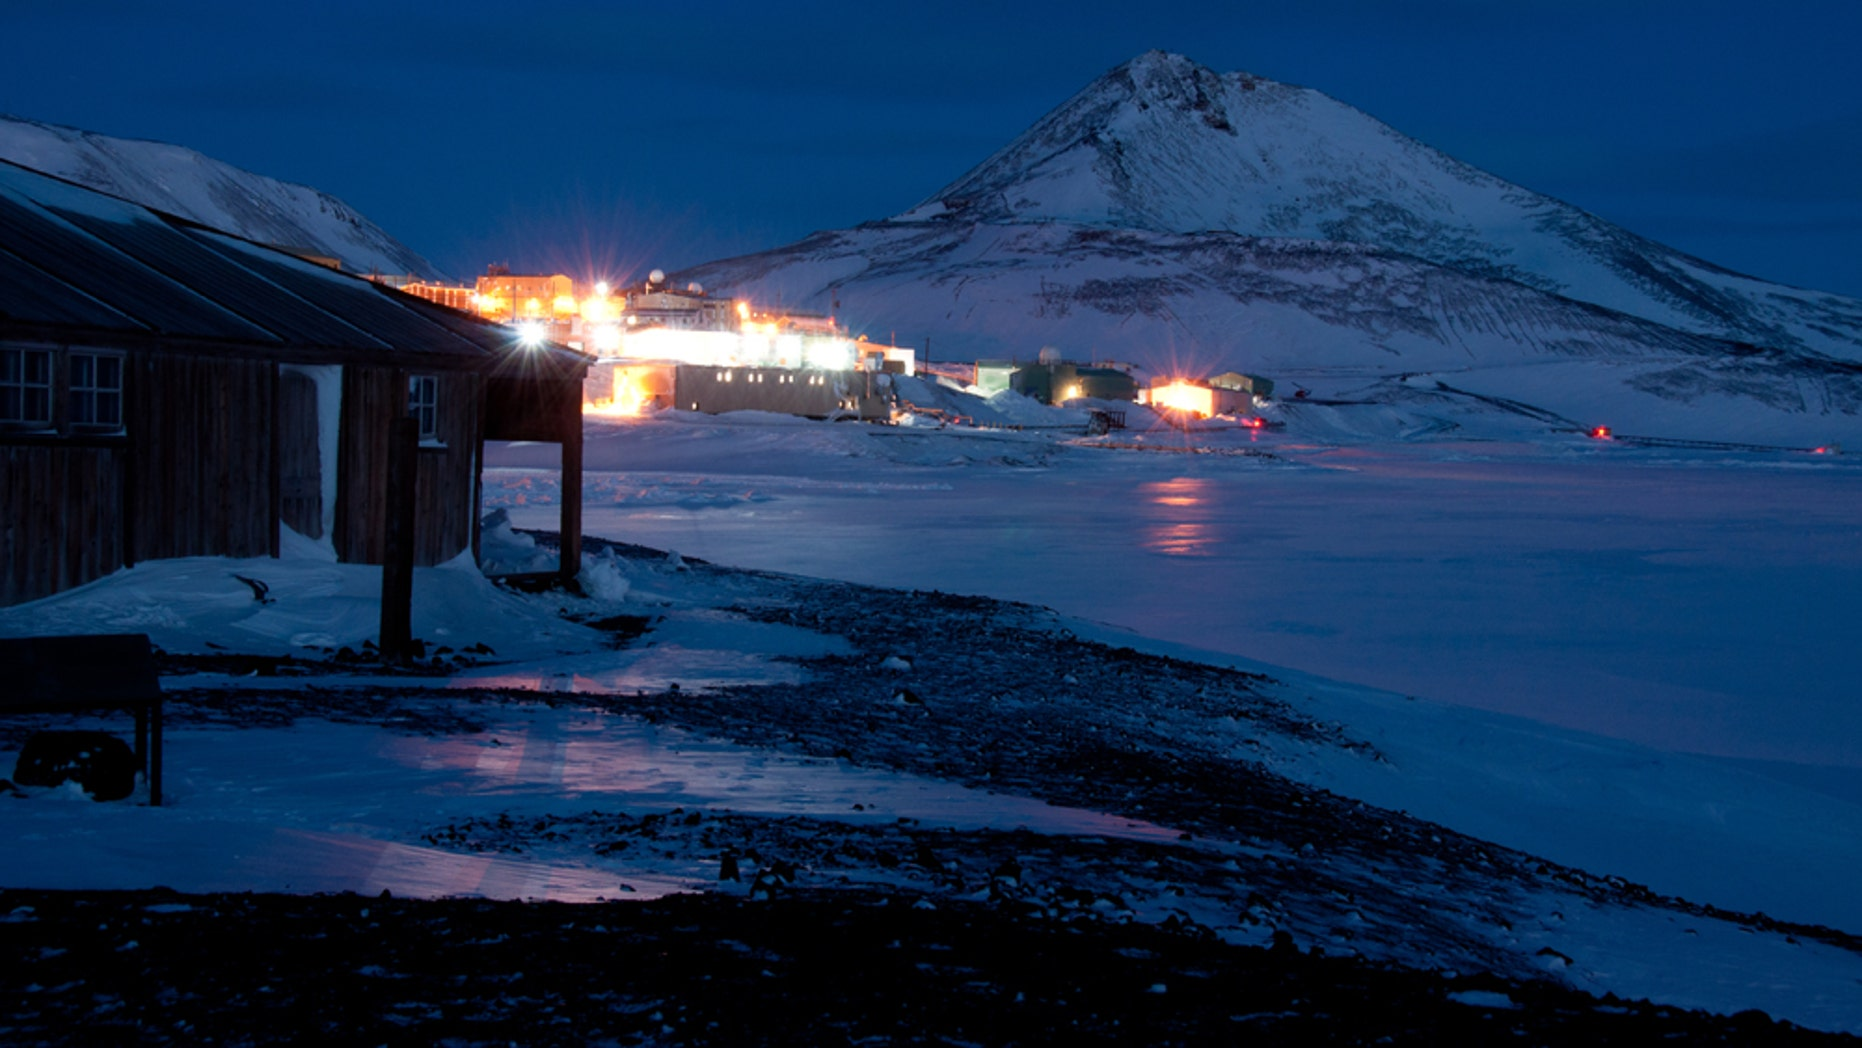 McMurdo Station in Antarctica seen from Hut Point Peninsula.